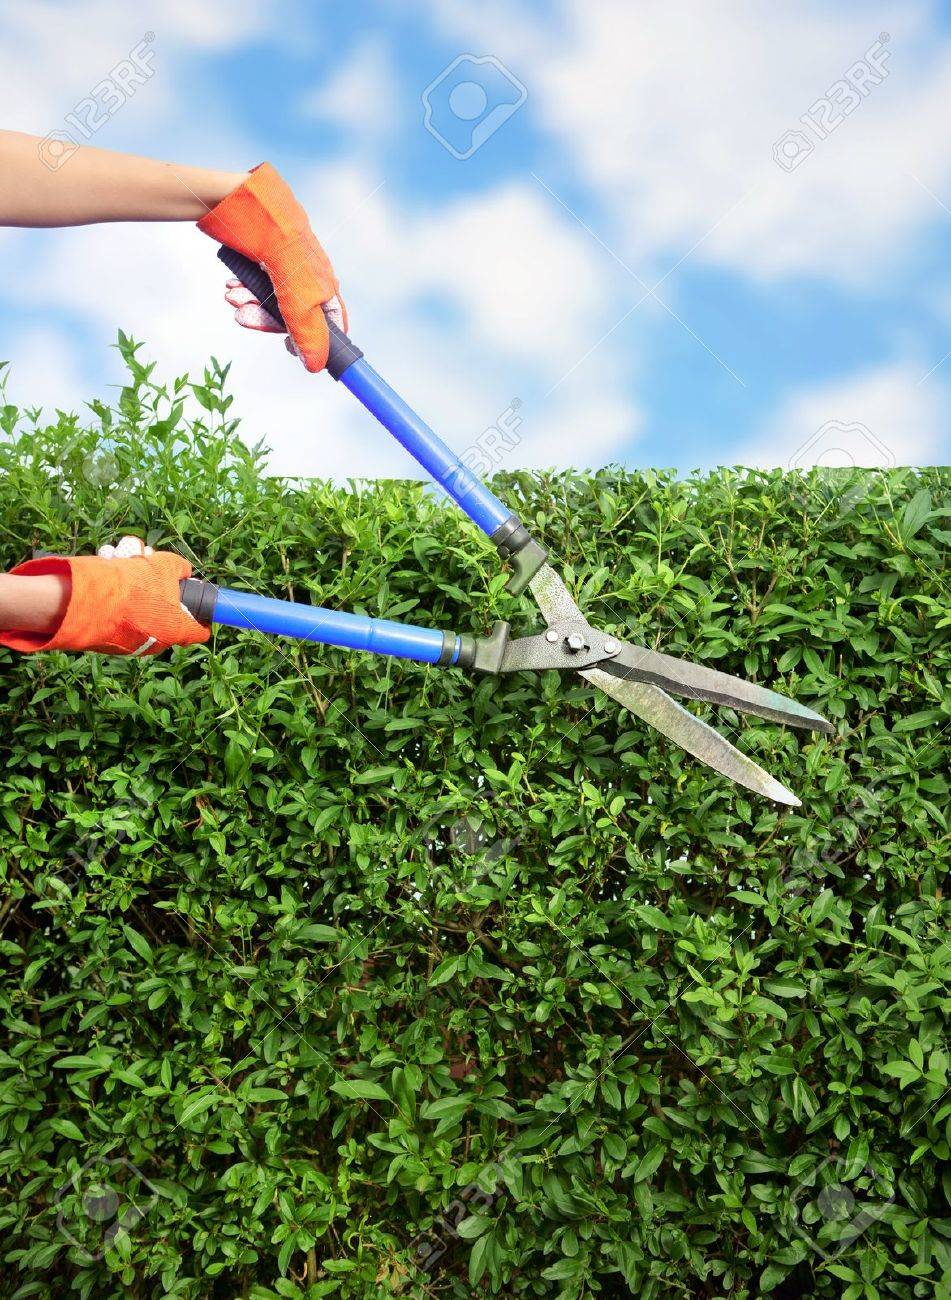 hands with garden shears cutting a hedge in the garden stock photo 16622877 - Garden Shears